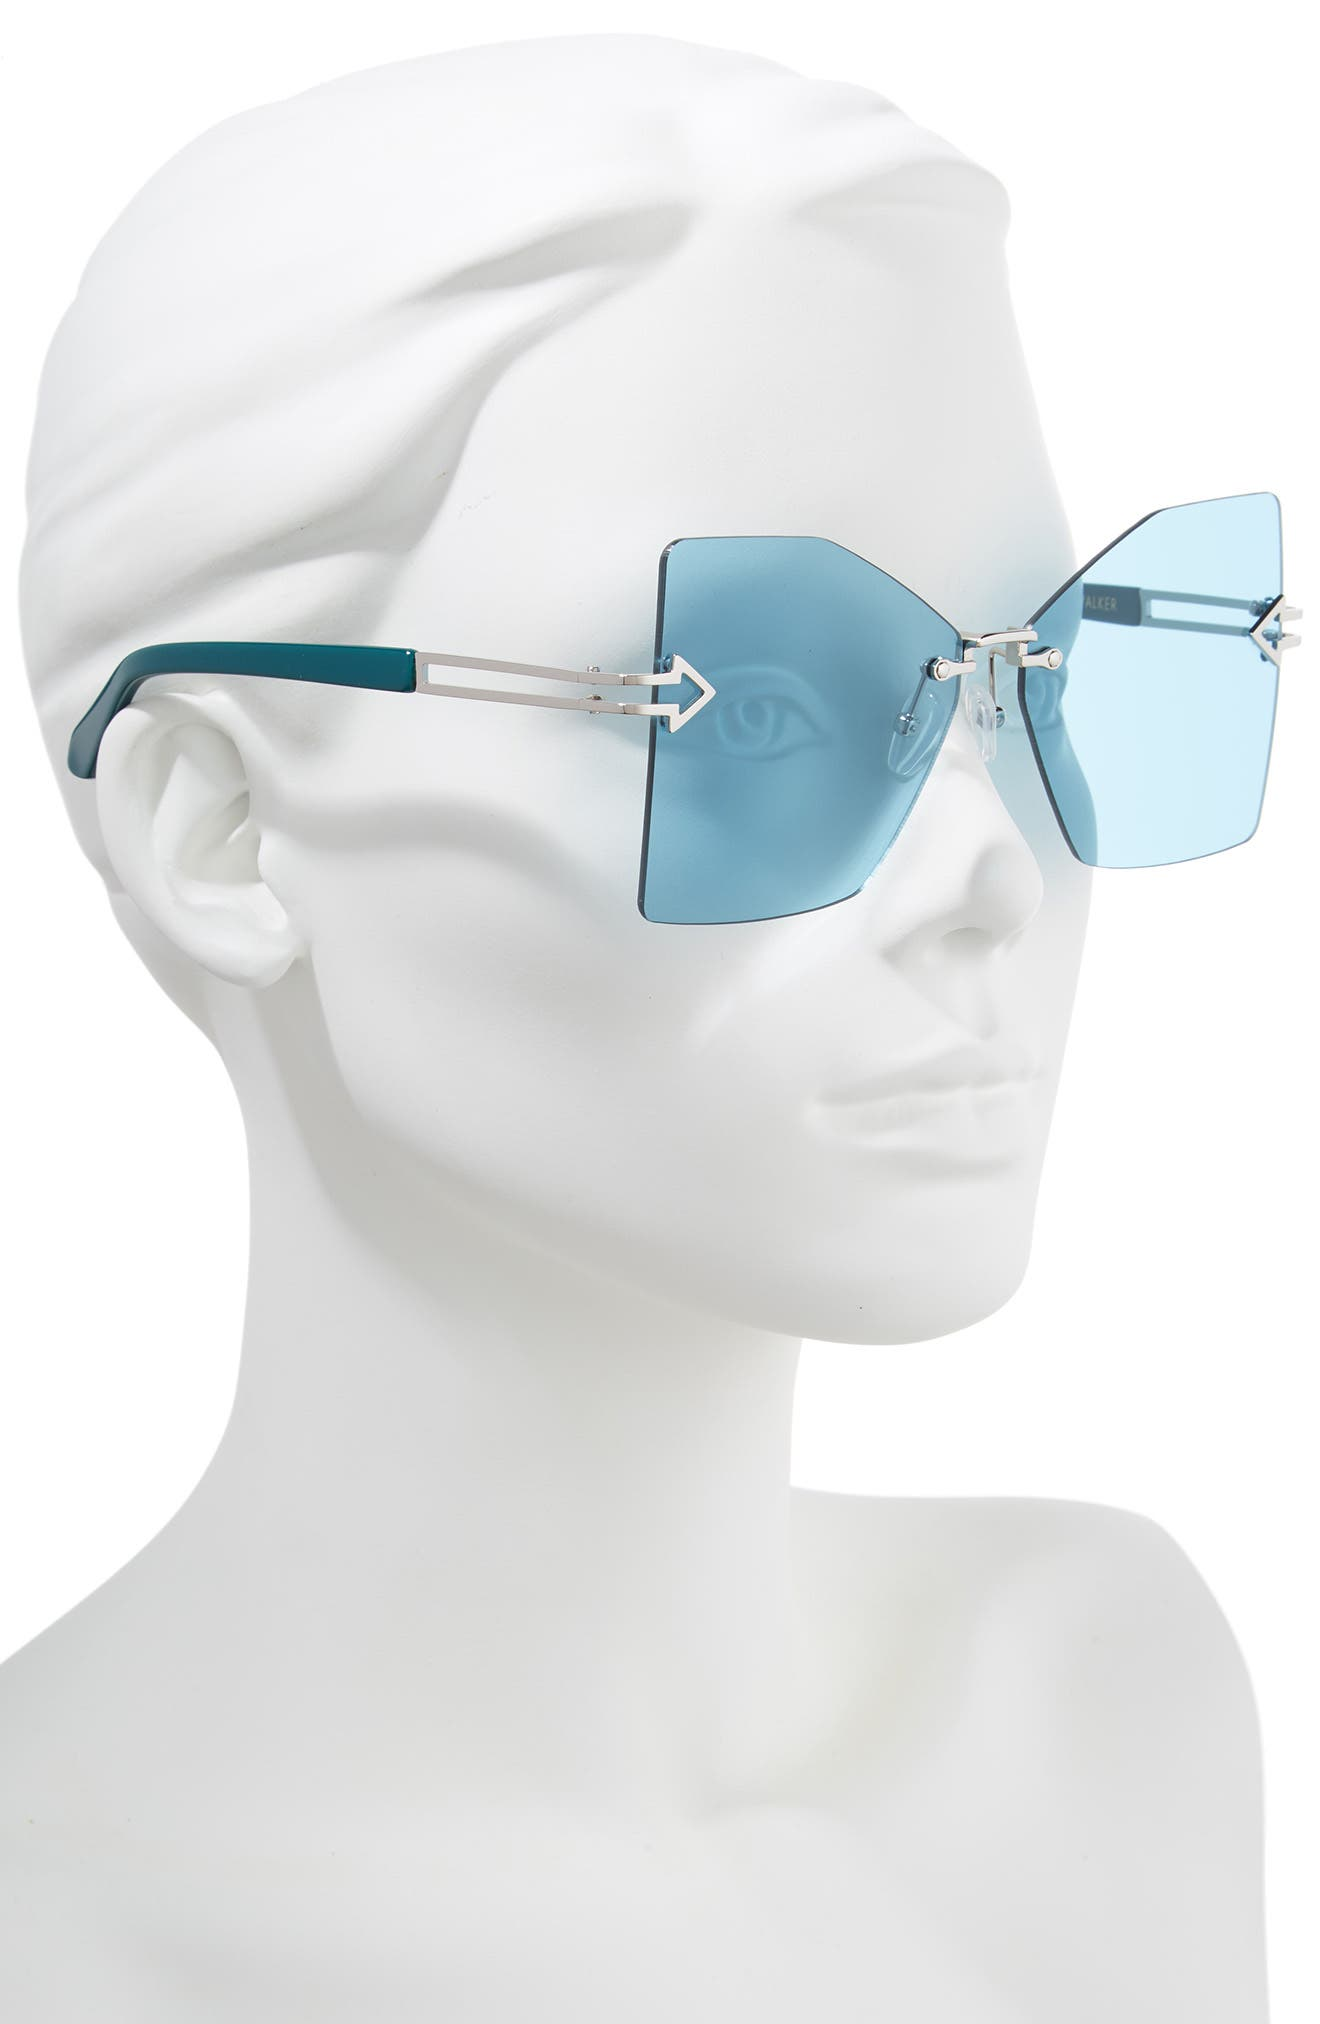 Wanderlust 61mm Butterfly Sunglasses,                             Alternate thumbnail 2, color,                             SHINY SILVER/ EMERALD